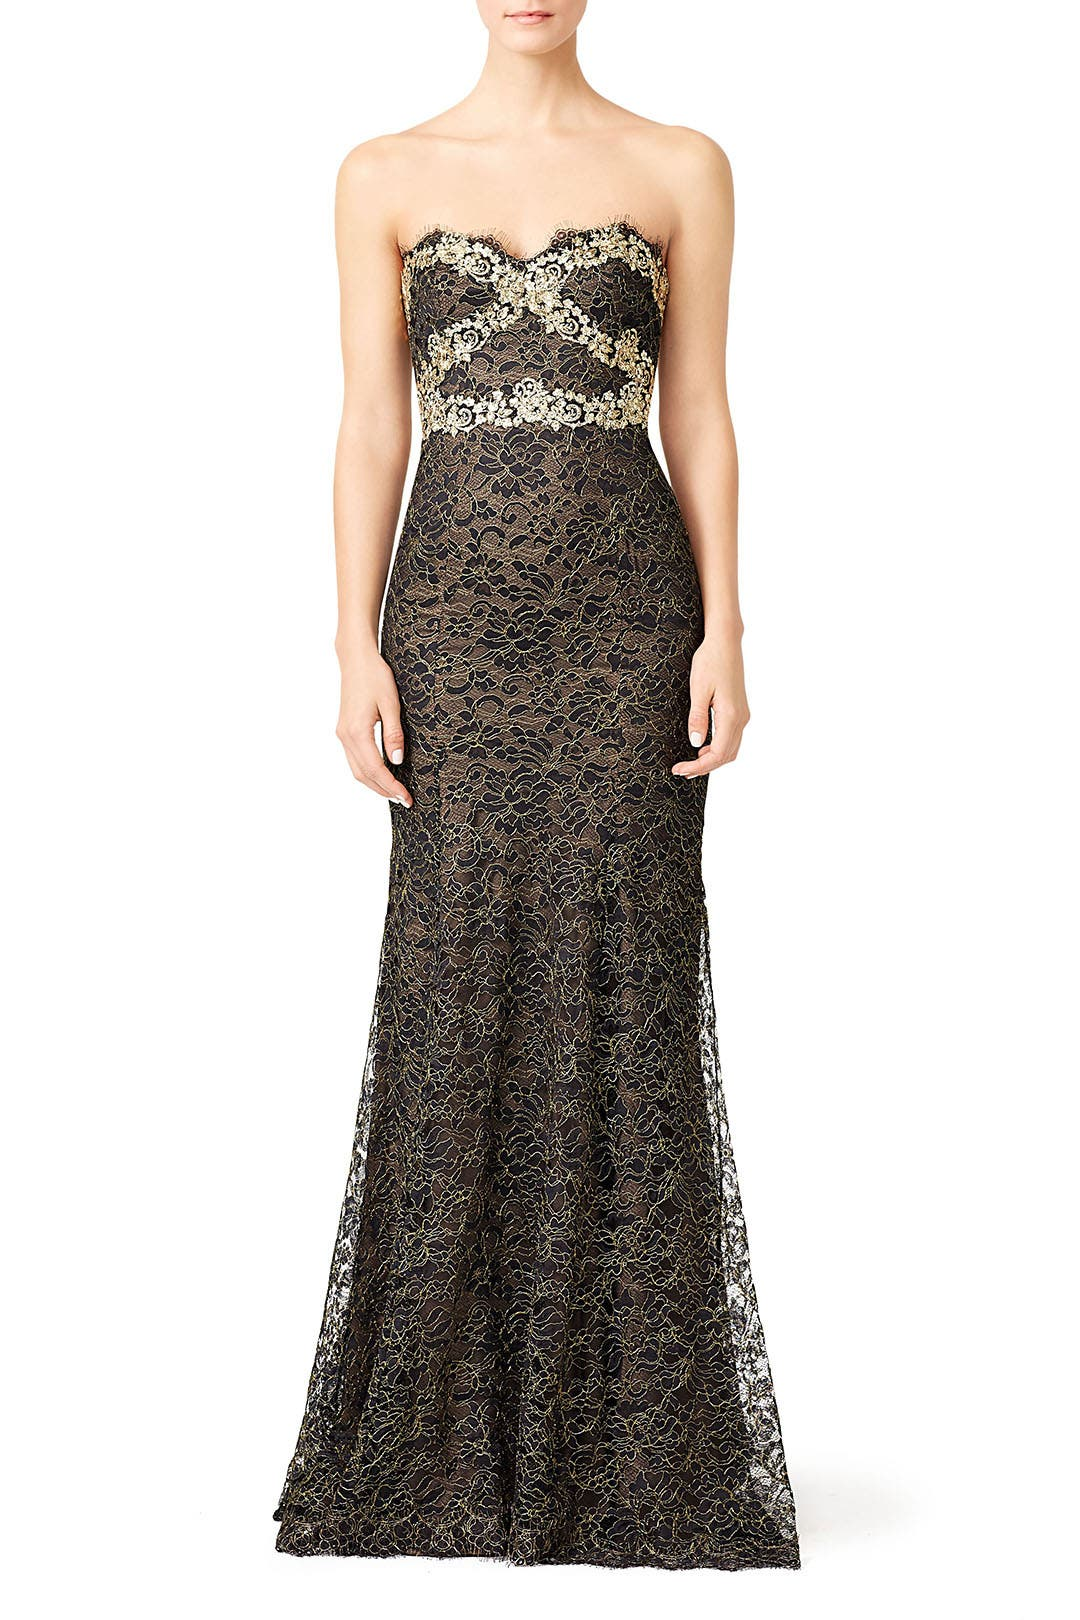 3451cdeb Gilded Gold Strapless Gown by Marchesa Notte for $215 | Rent the Runway